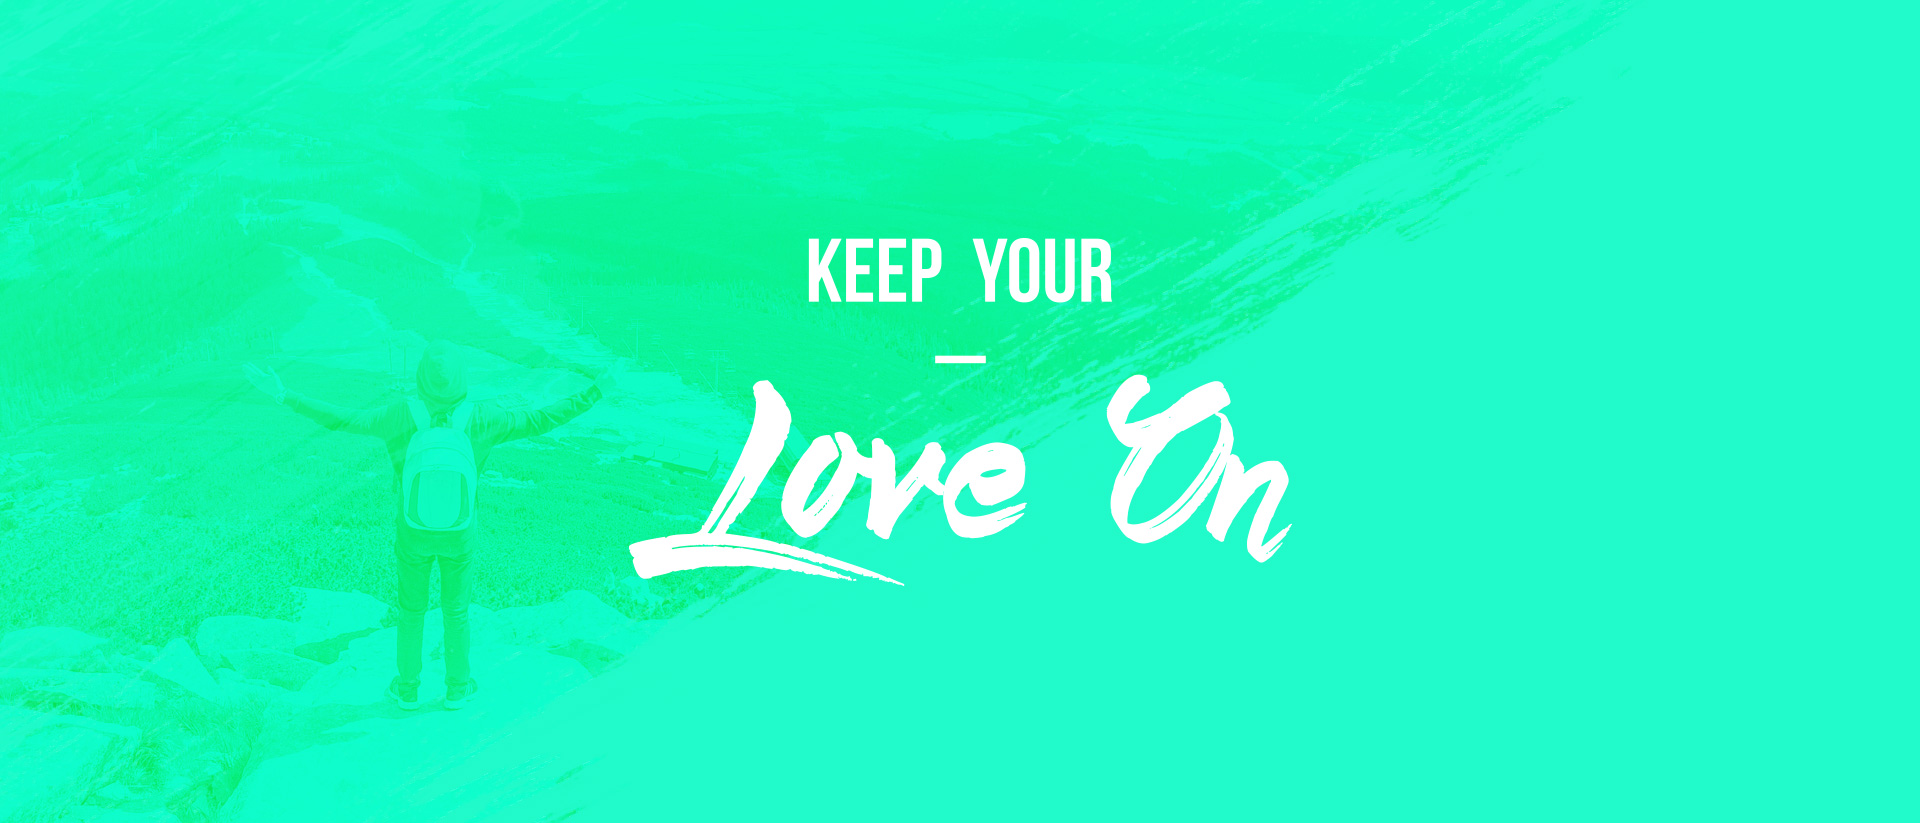 Keep Your Love On